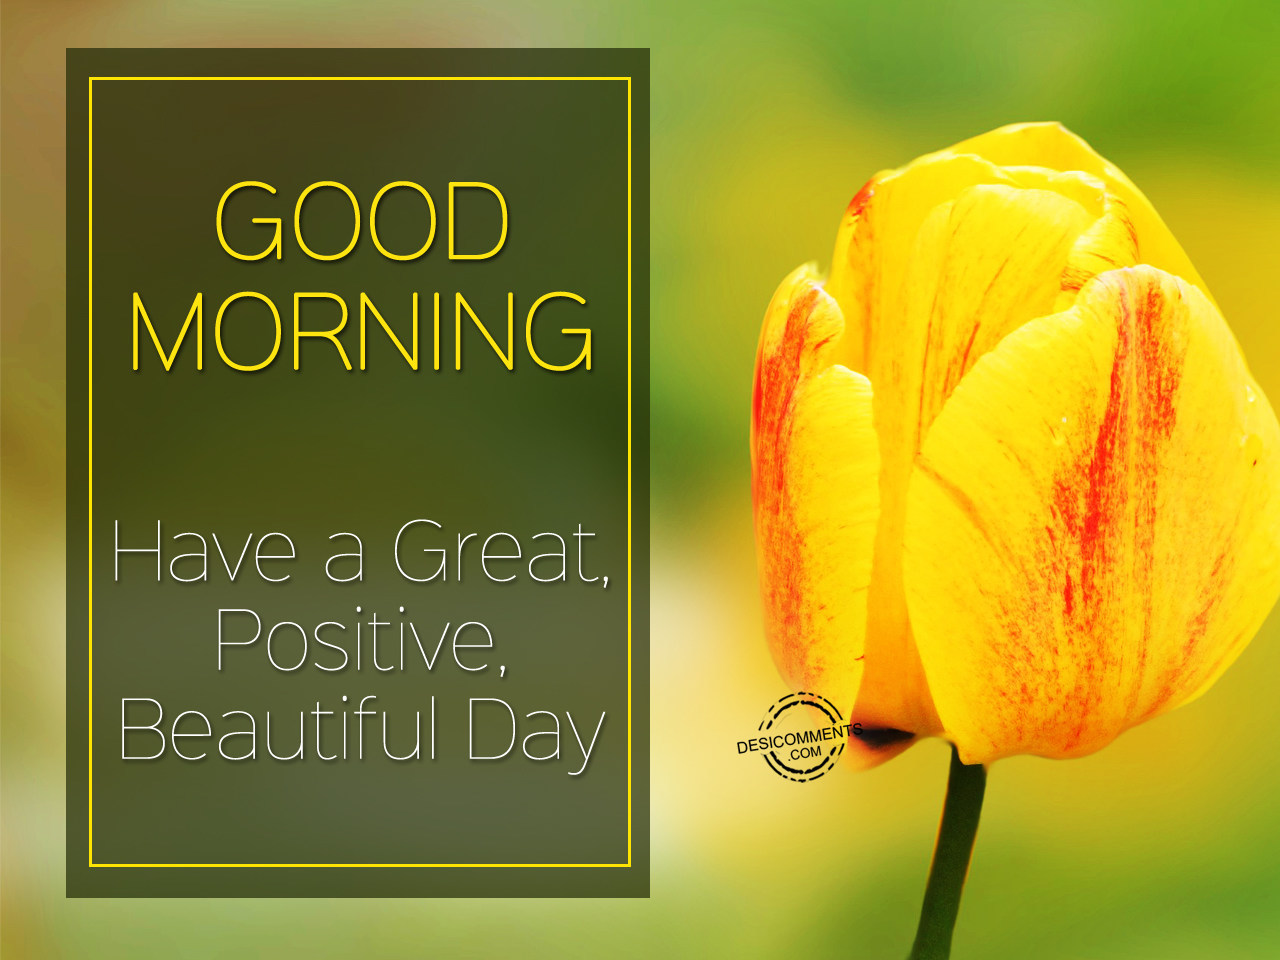 Good Morning Have A Great Day : Good morning have a great positive beautiful day